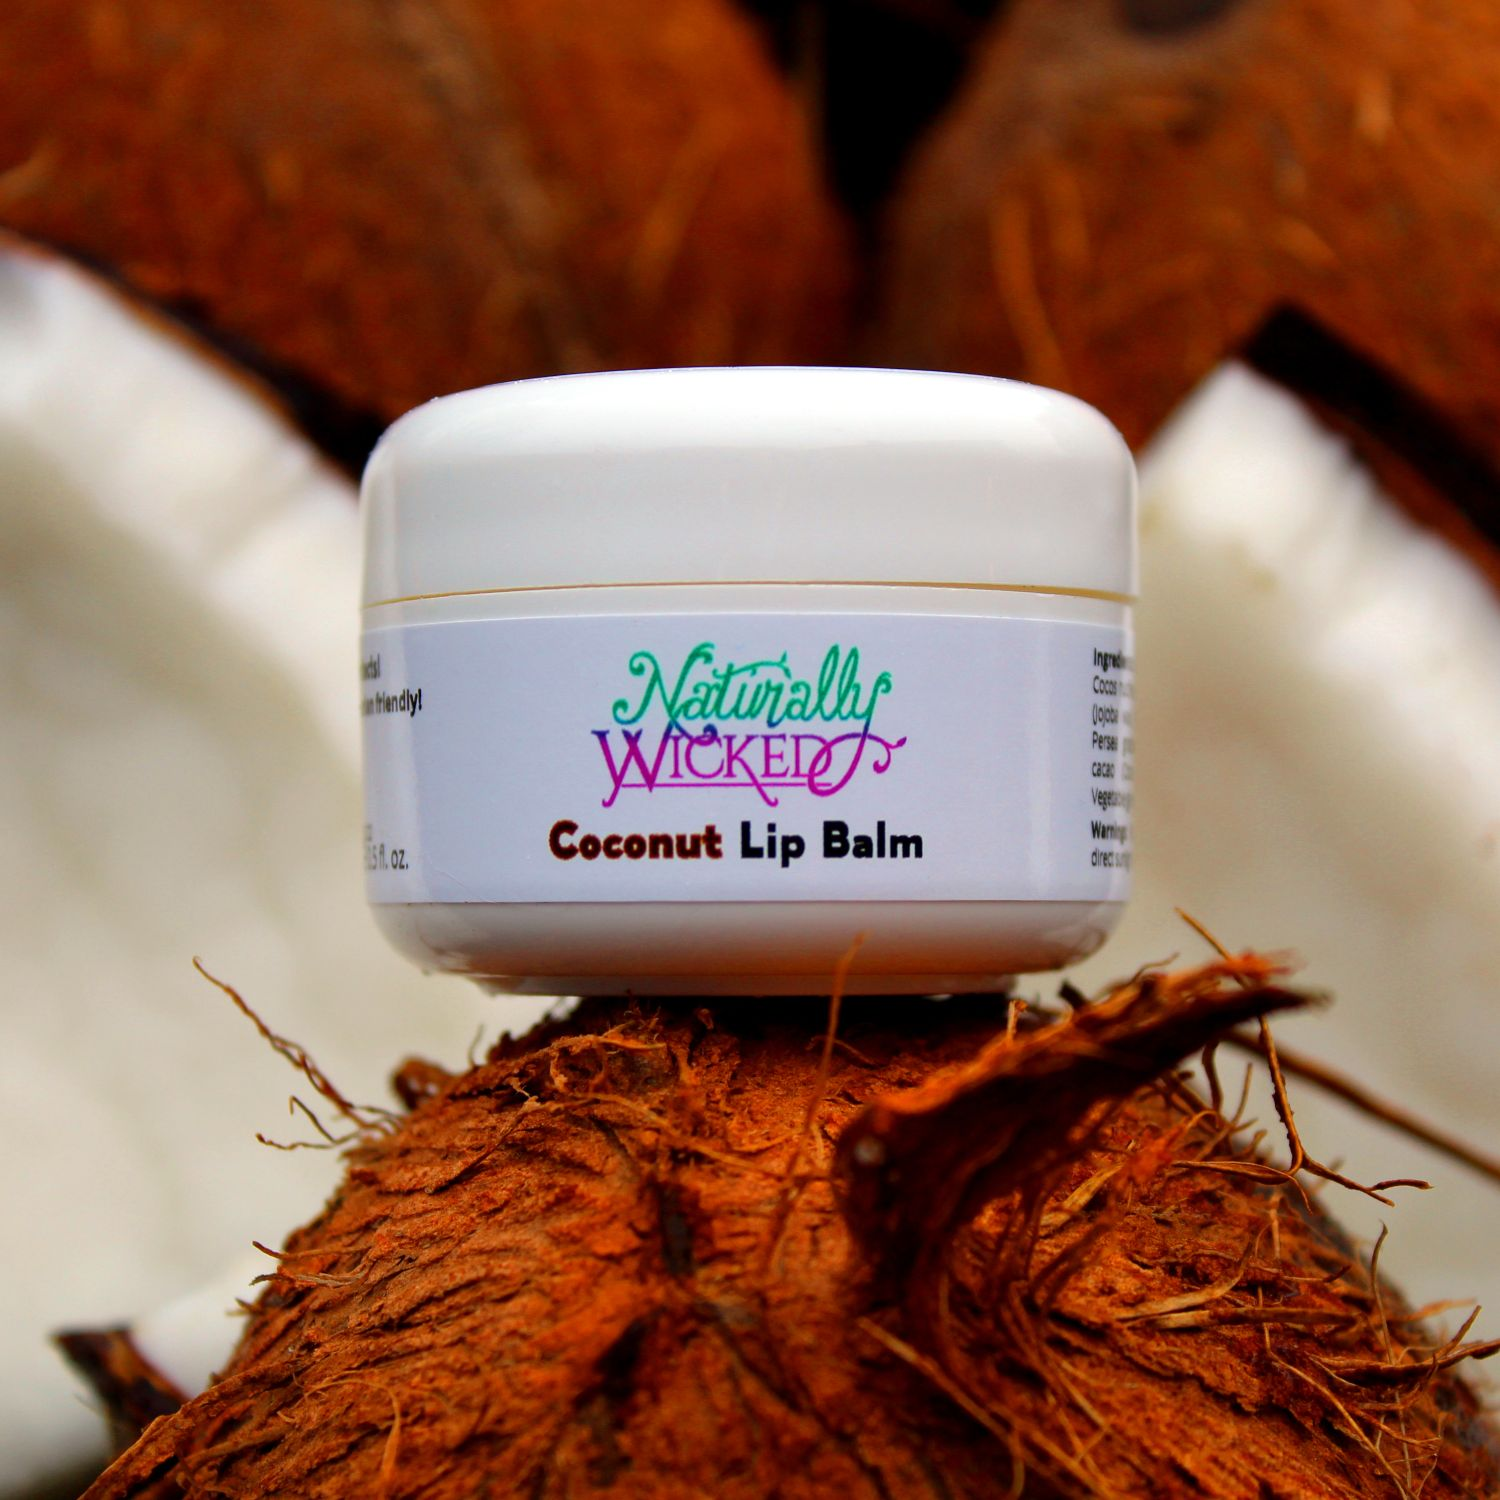 Naturally Wicked Coconut Lip Balm Sat On Top Of Brown Coconut Shell Between Broken White Inner Coconuts